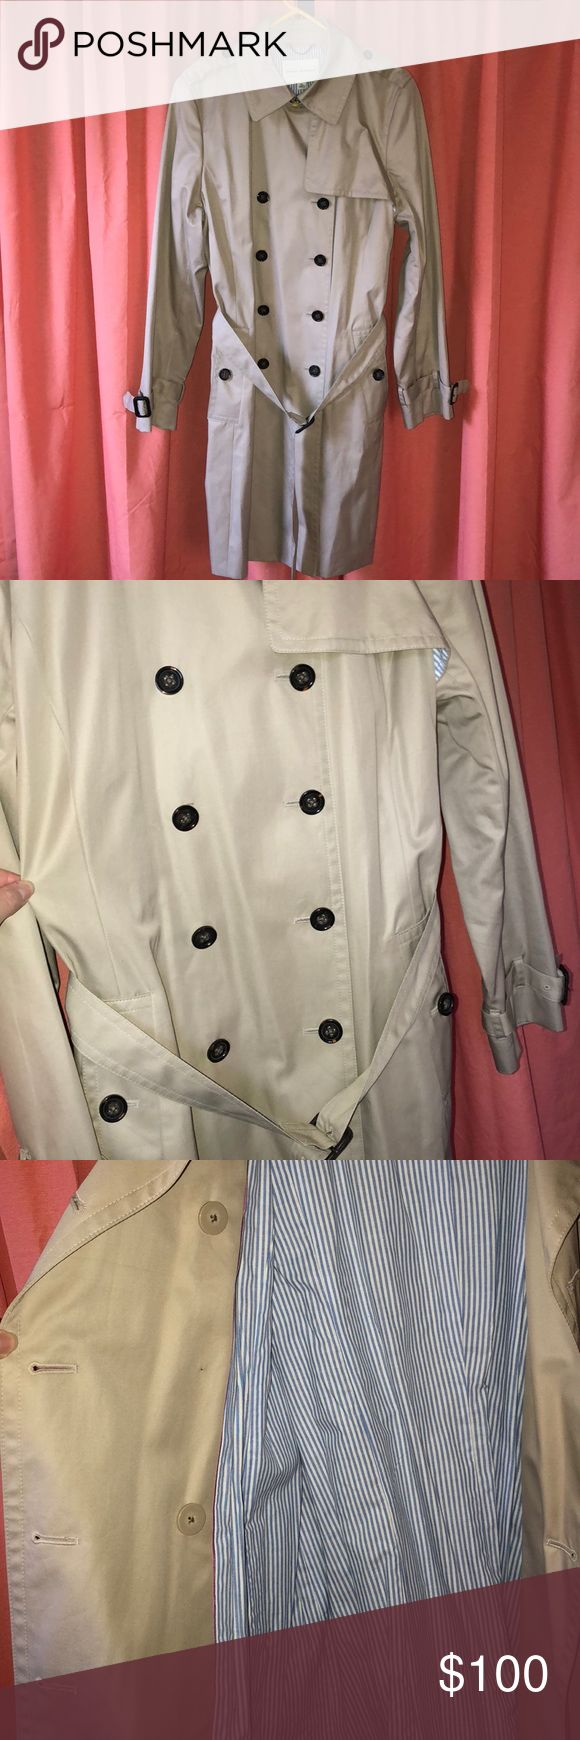 Never worn Banana Republic Trench Coat Never worn! Excellent condition. Khaki colored with brown buttons and buckles. Adjustable belt and sleeves. Double buttons.  Shell & body lining 100% cotton Sleeve lining 58% acetate 42% rayon Banana Republic Jackets & Coats Trench Coats